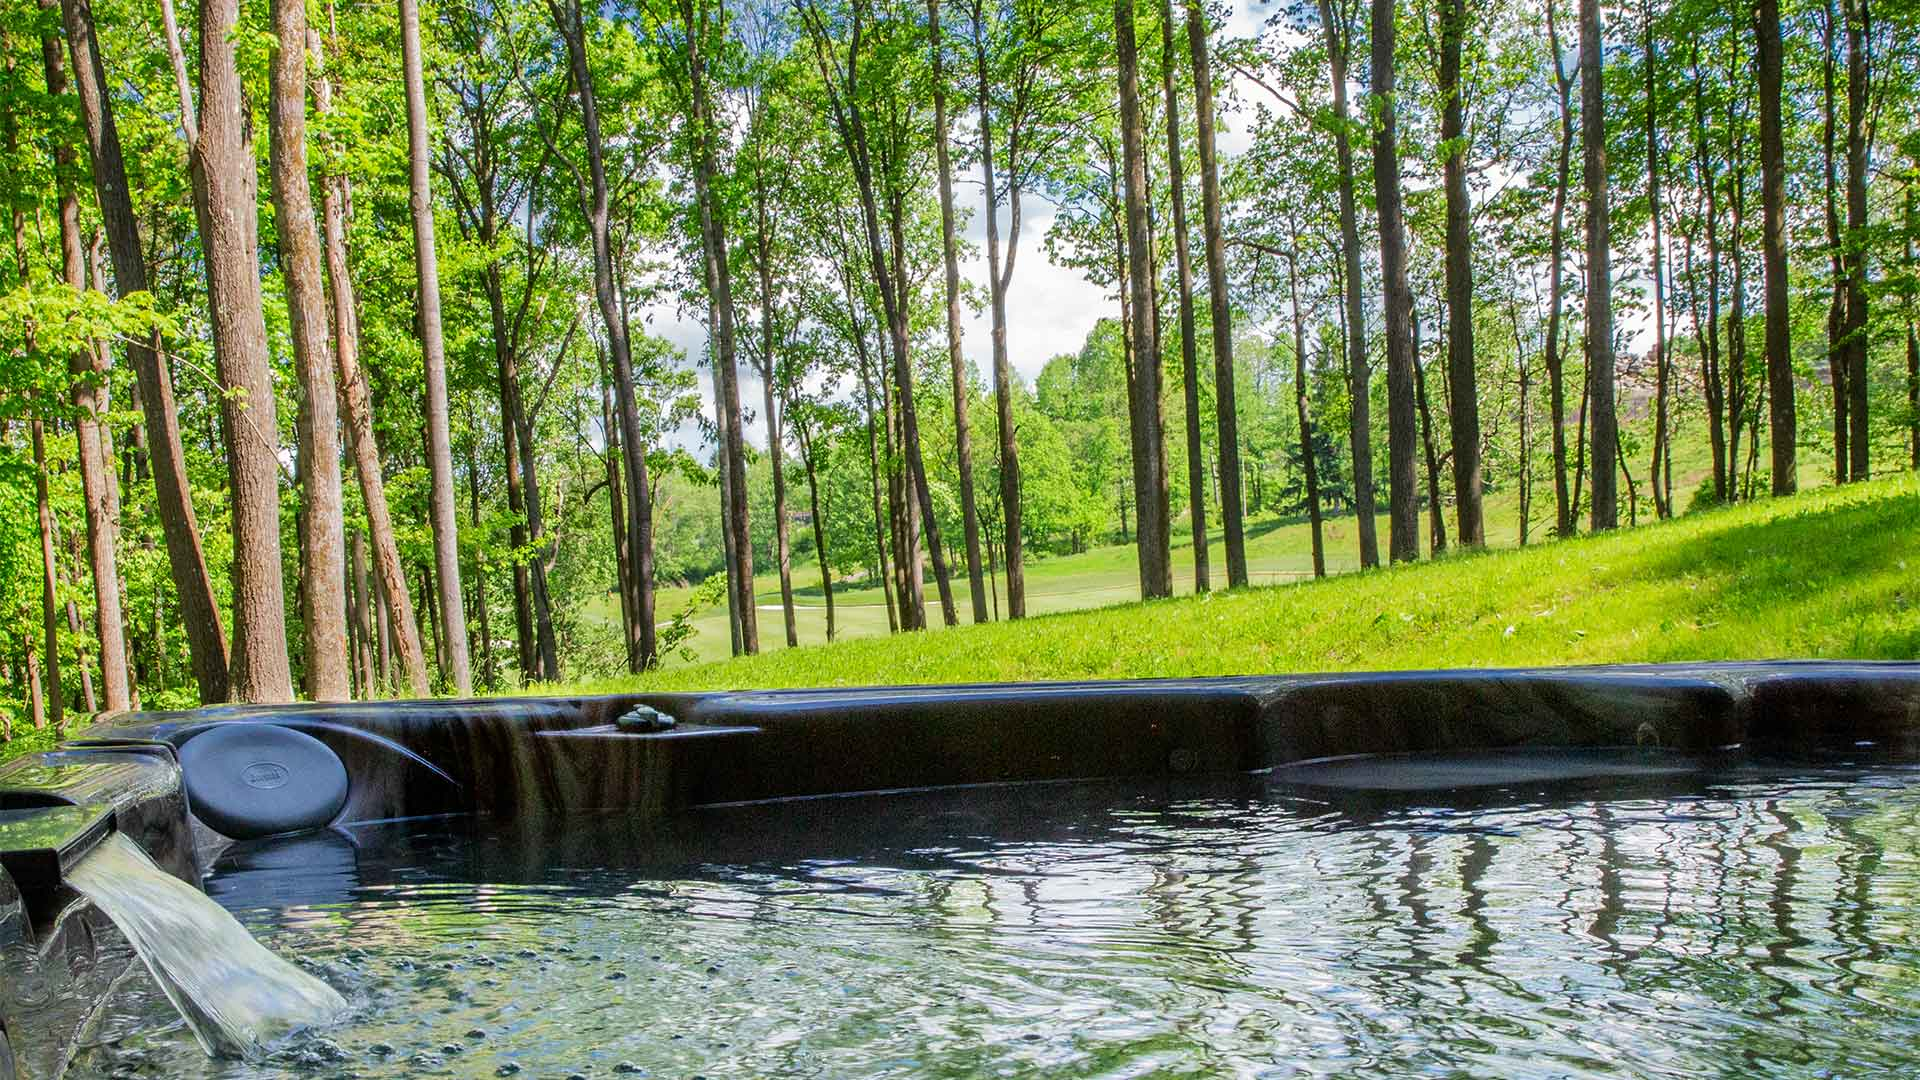 detail shot of a hot tub with lush green grass and trees in the background